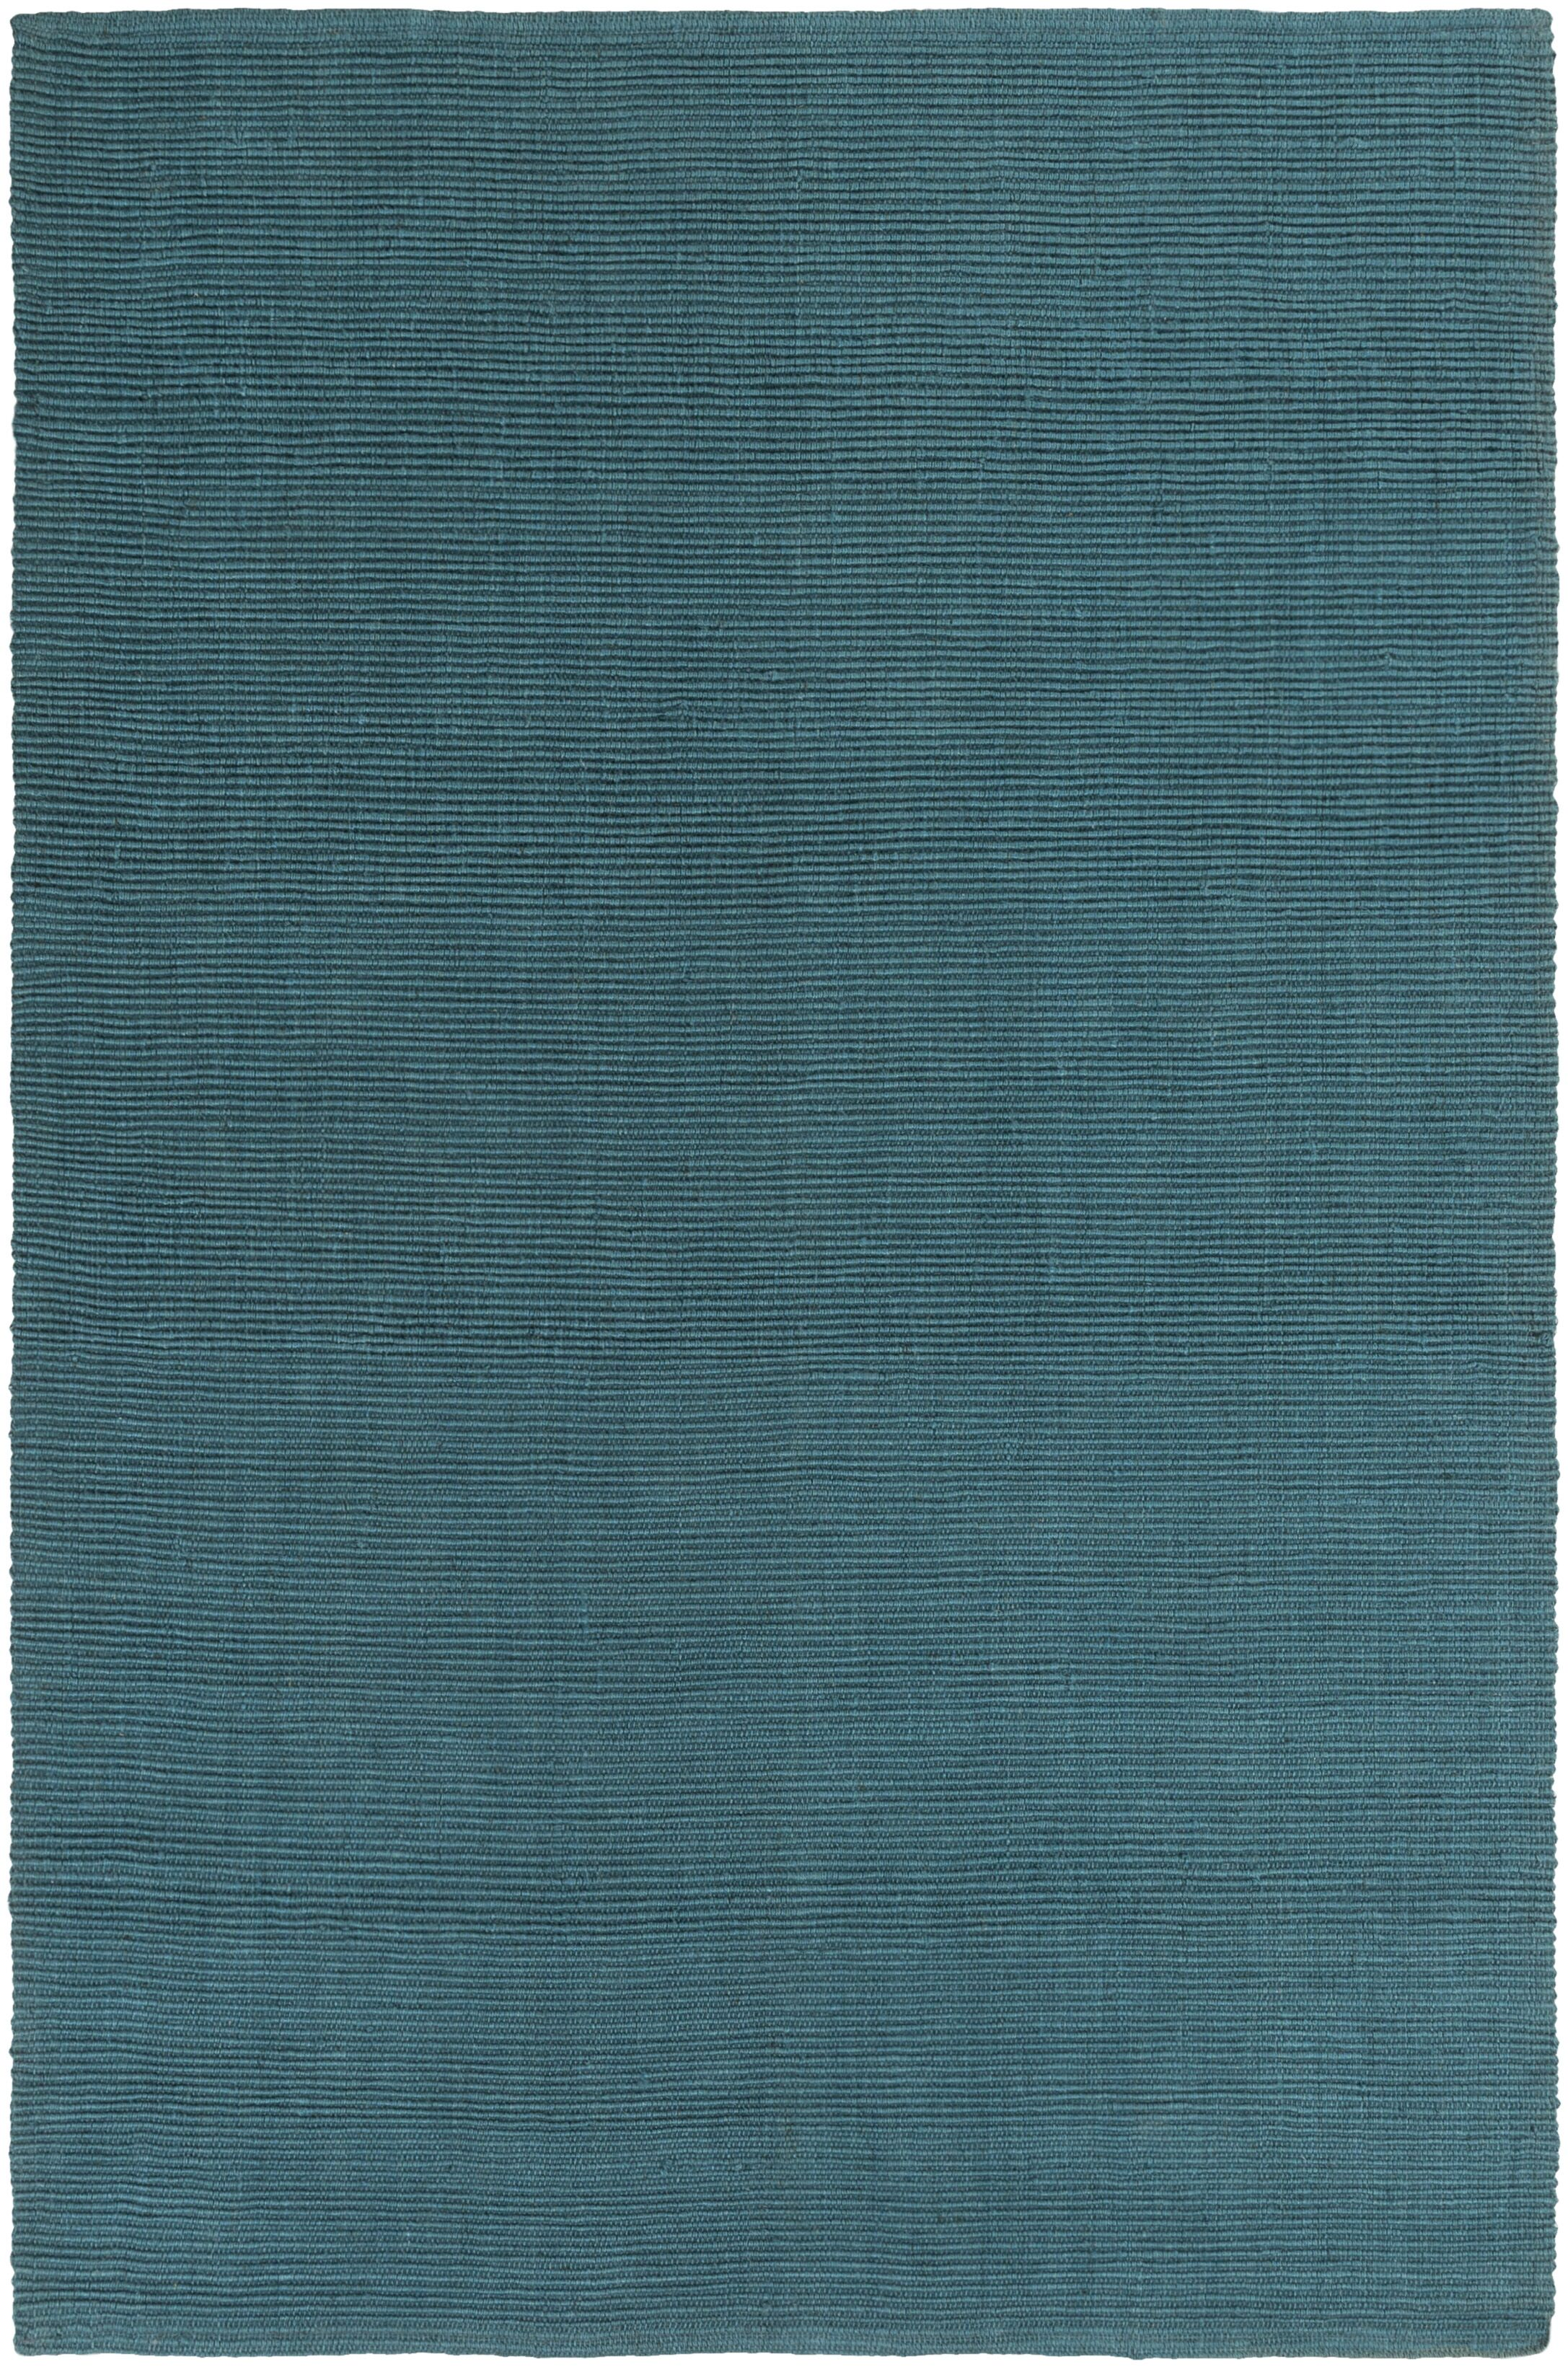 Yother Hand-Woven Teal Area Rug Rug Size: Rectangle 5' x 7'6